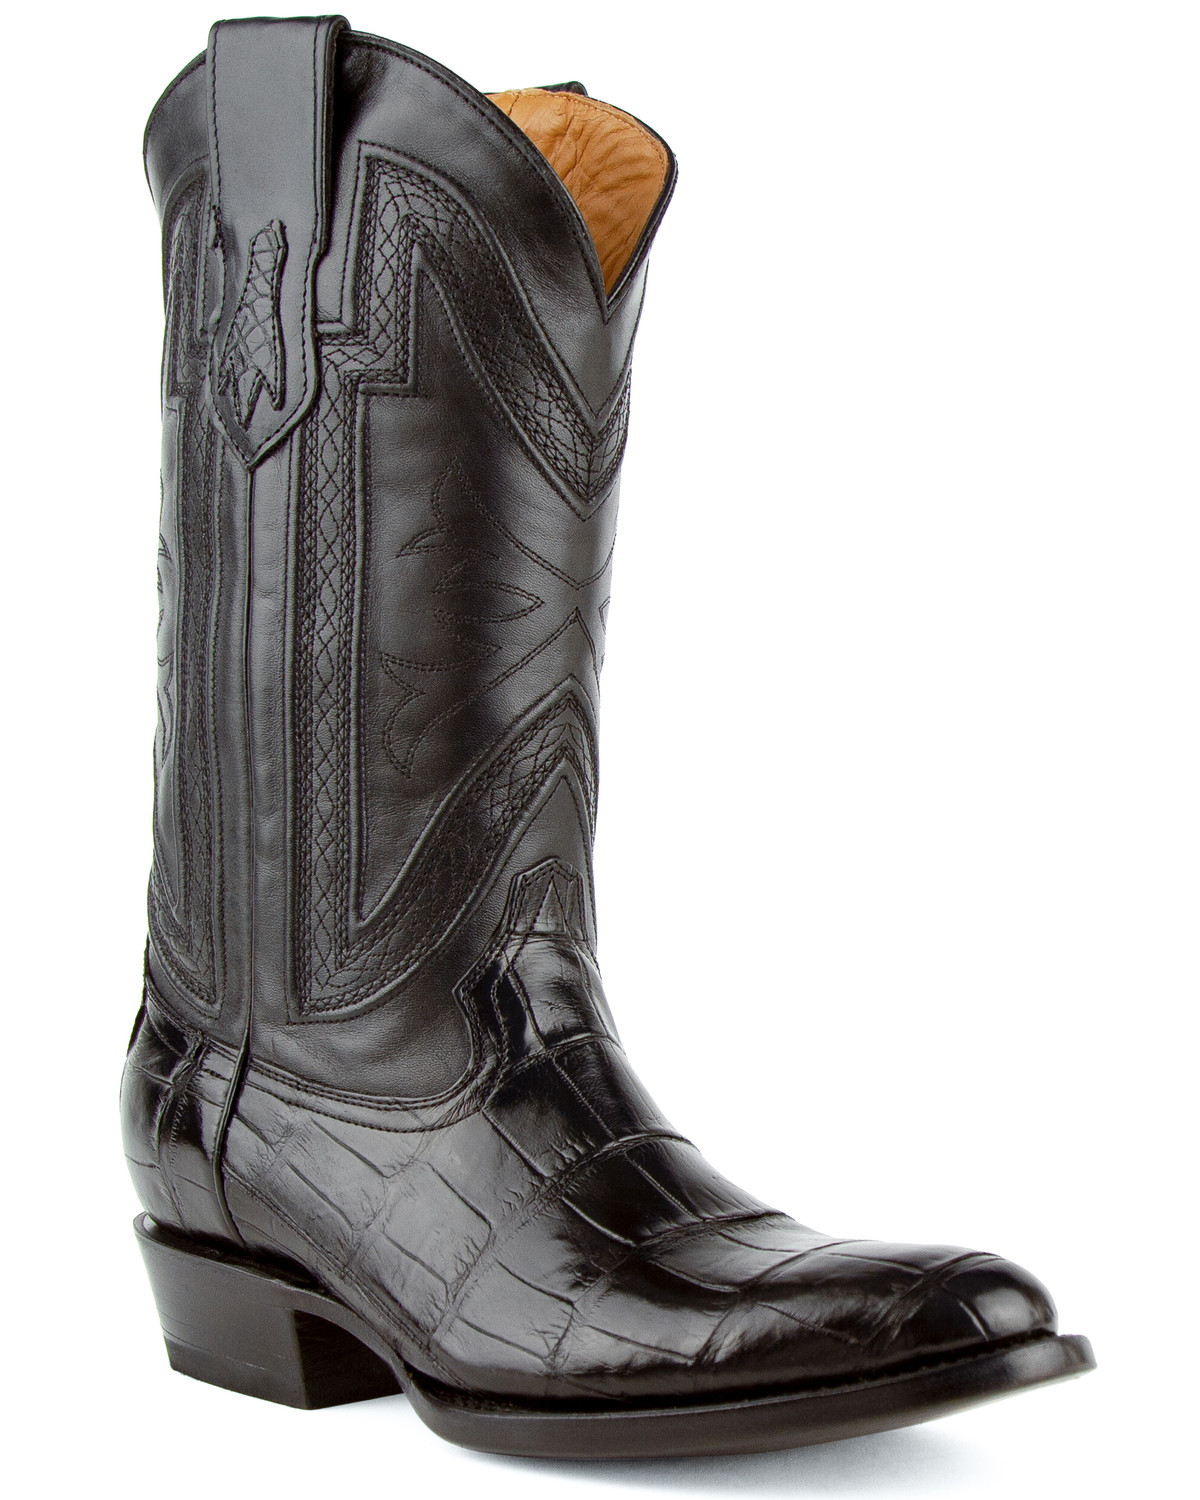 Ferrini Alligator Belly Exotic Cowboy Boots Medium Toe